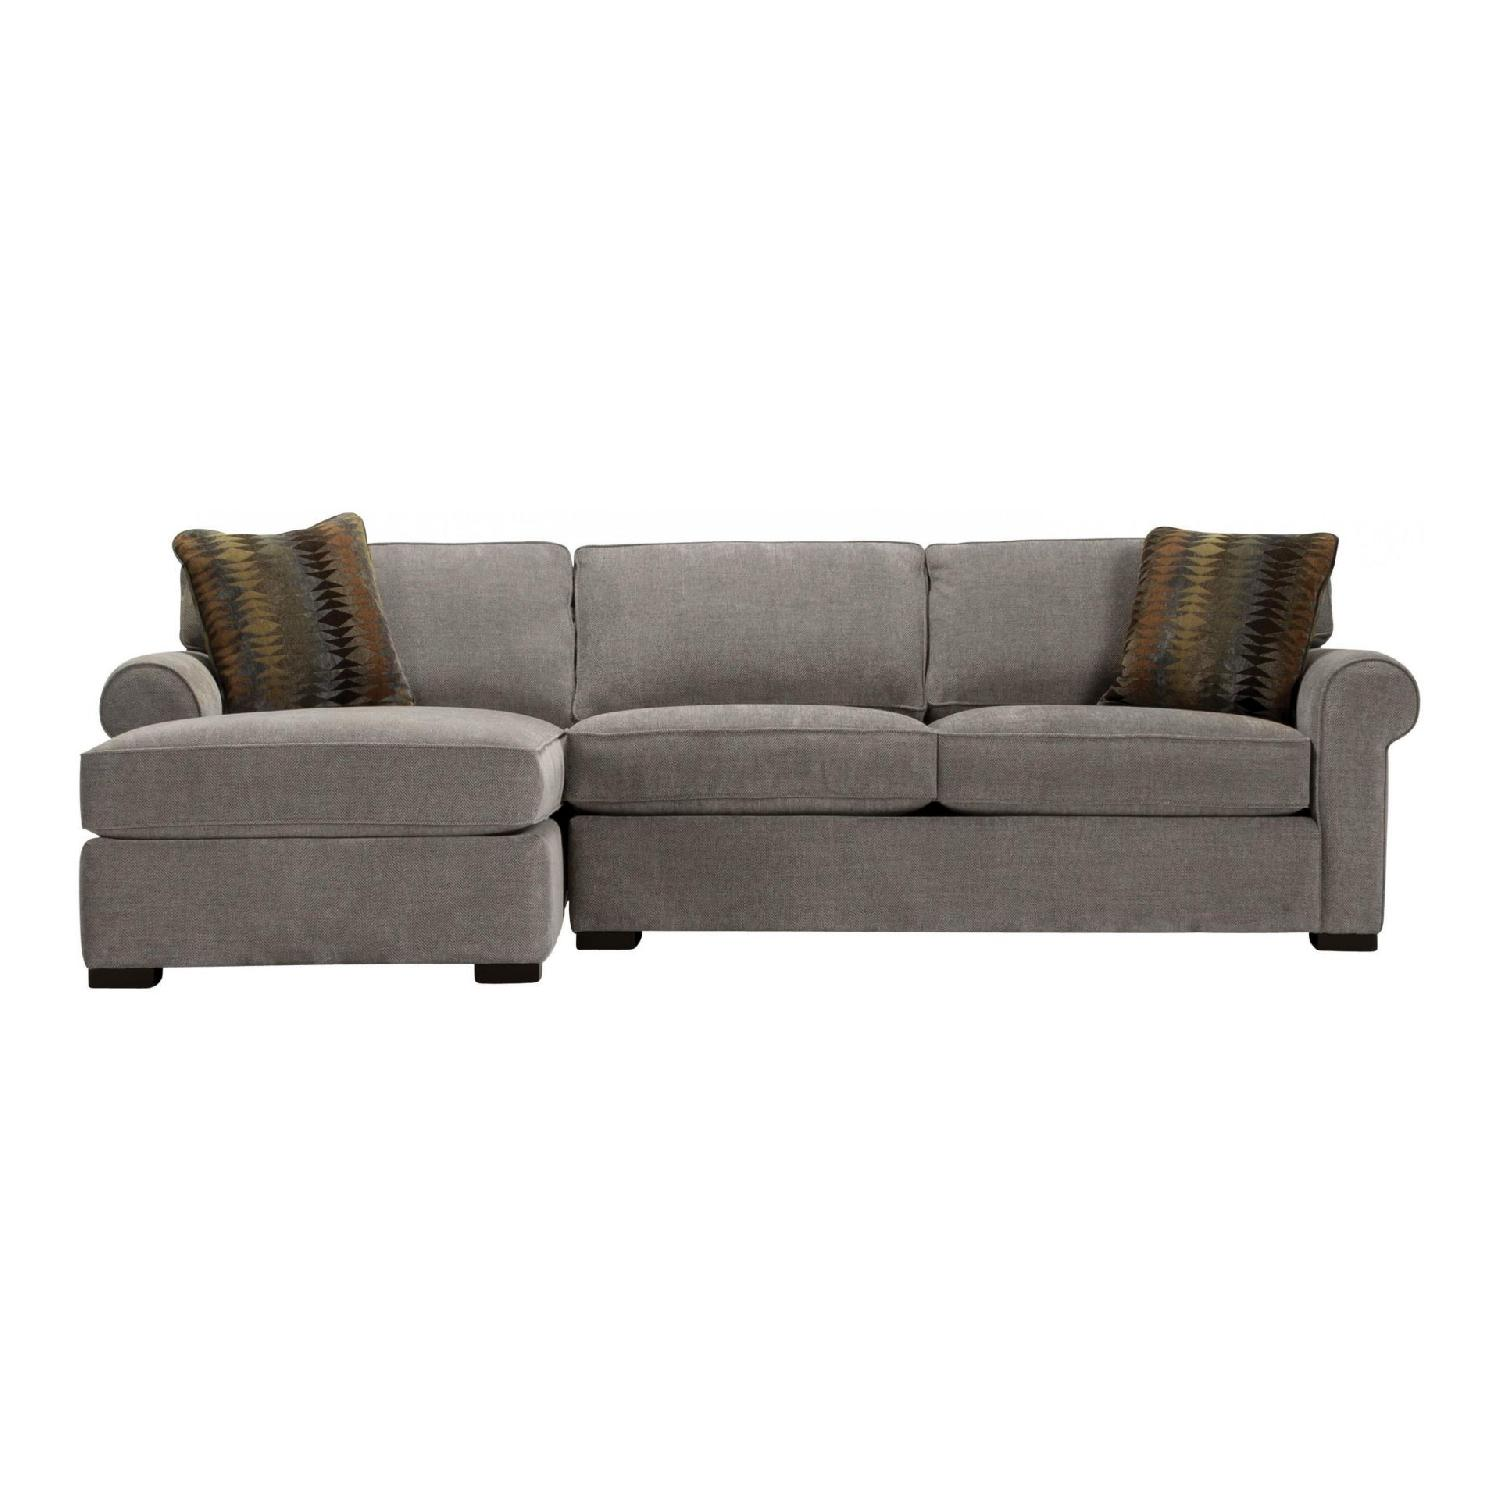 Raymour U0026 Flanigan Kipling Grey Sectional Sofa W/ Chaise ...